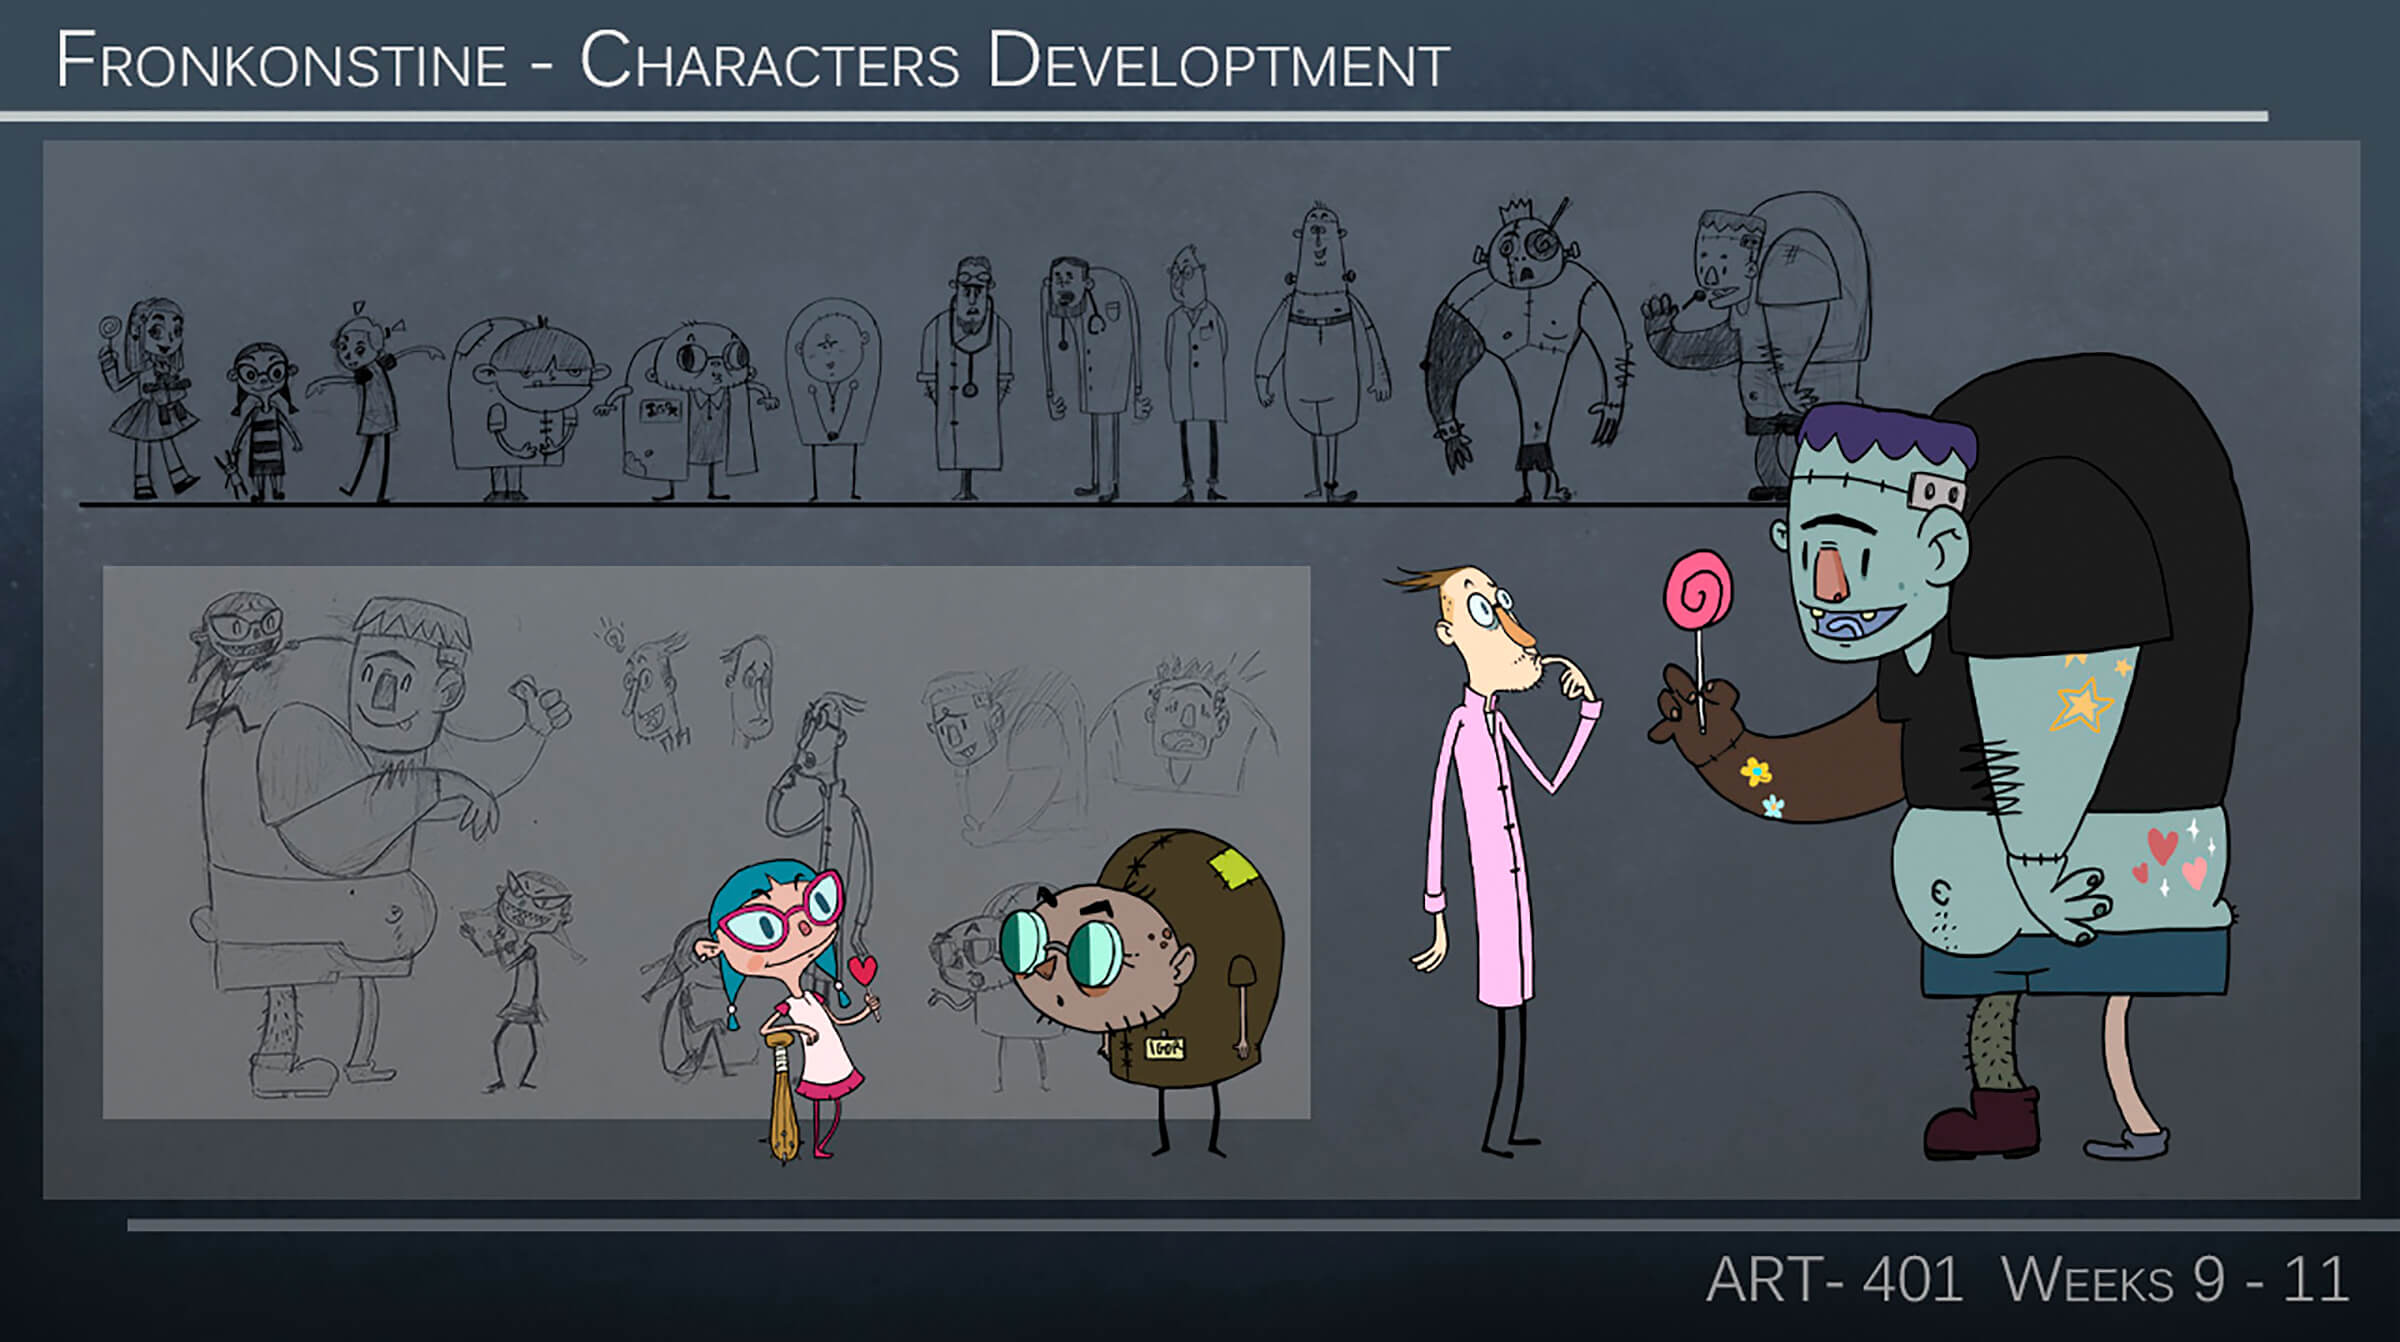 Concept sketches of a young girl, a scientist and his short assistant, and a friendly Frankenstein Monster holding a lollipop